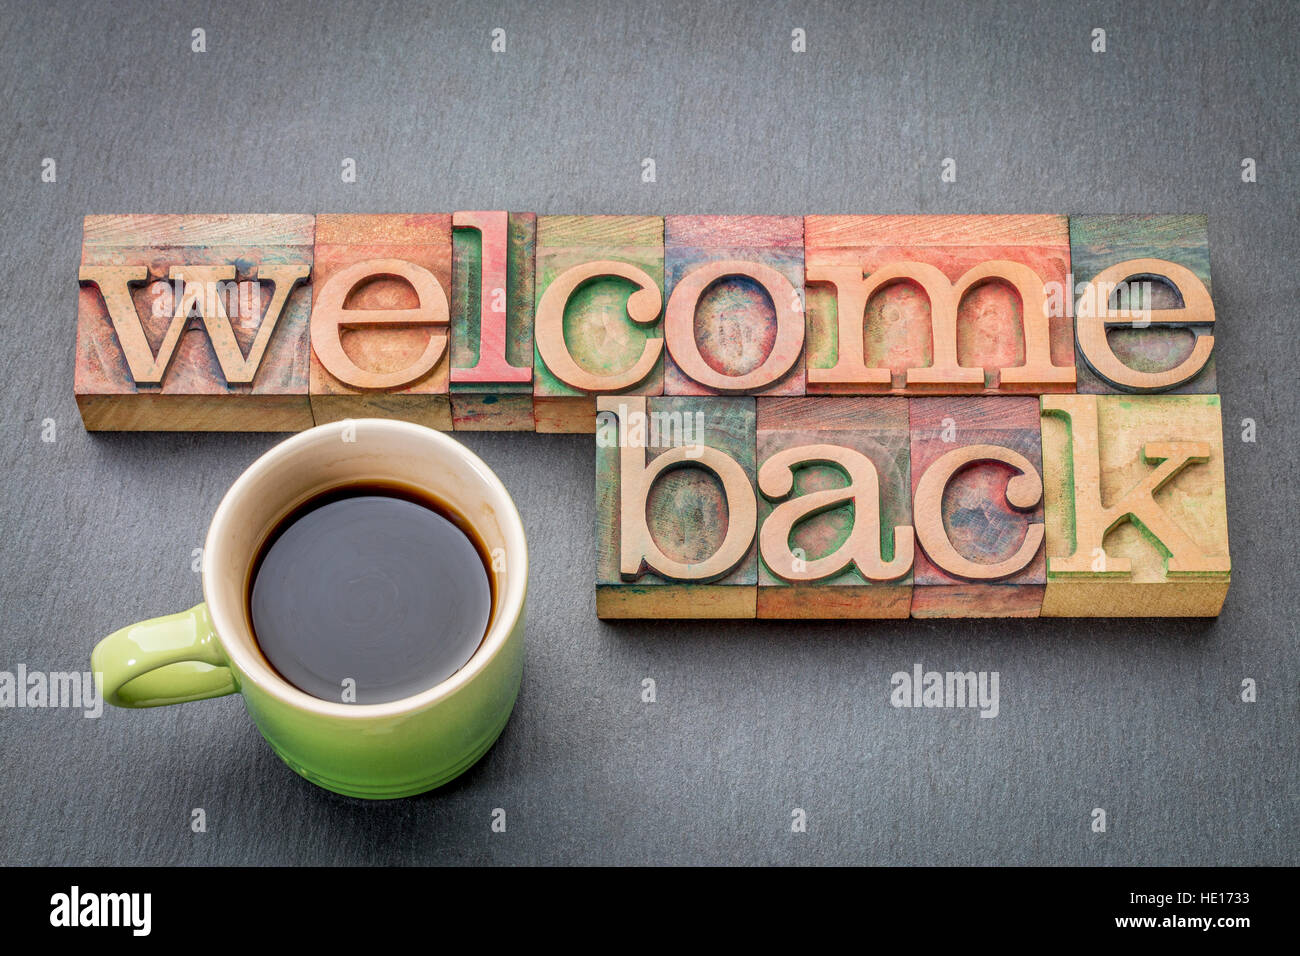 welcome-back-sign-text-in-letterpress-wood-type-with-a-cup-of-coffee-HE1733.jpg